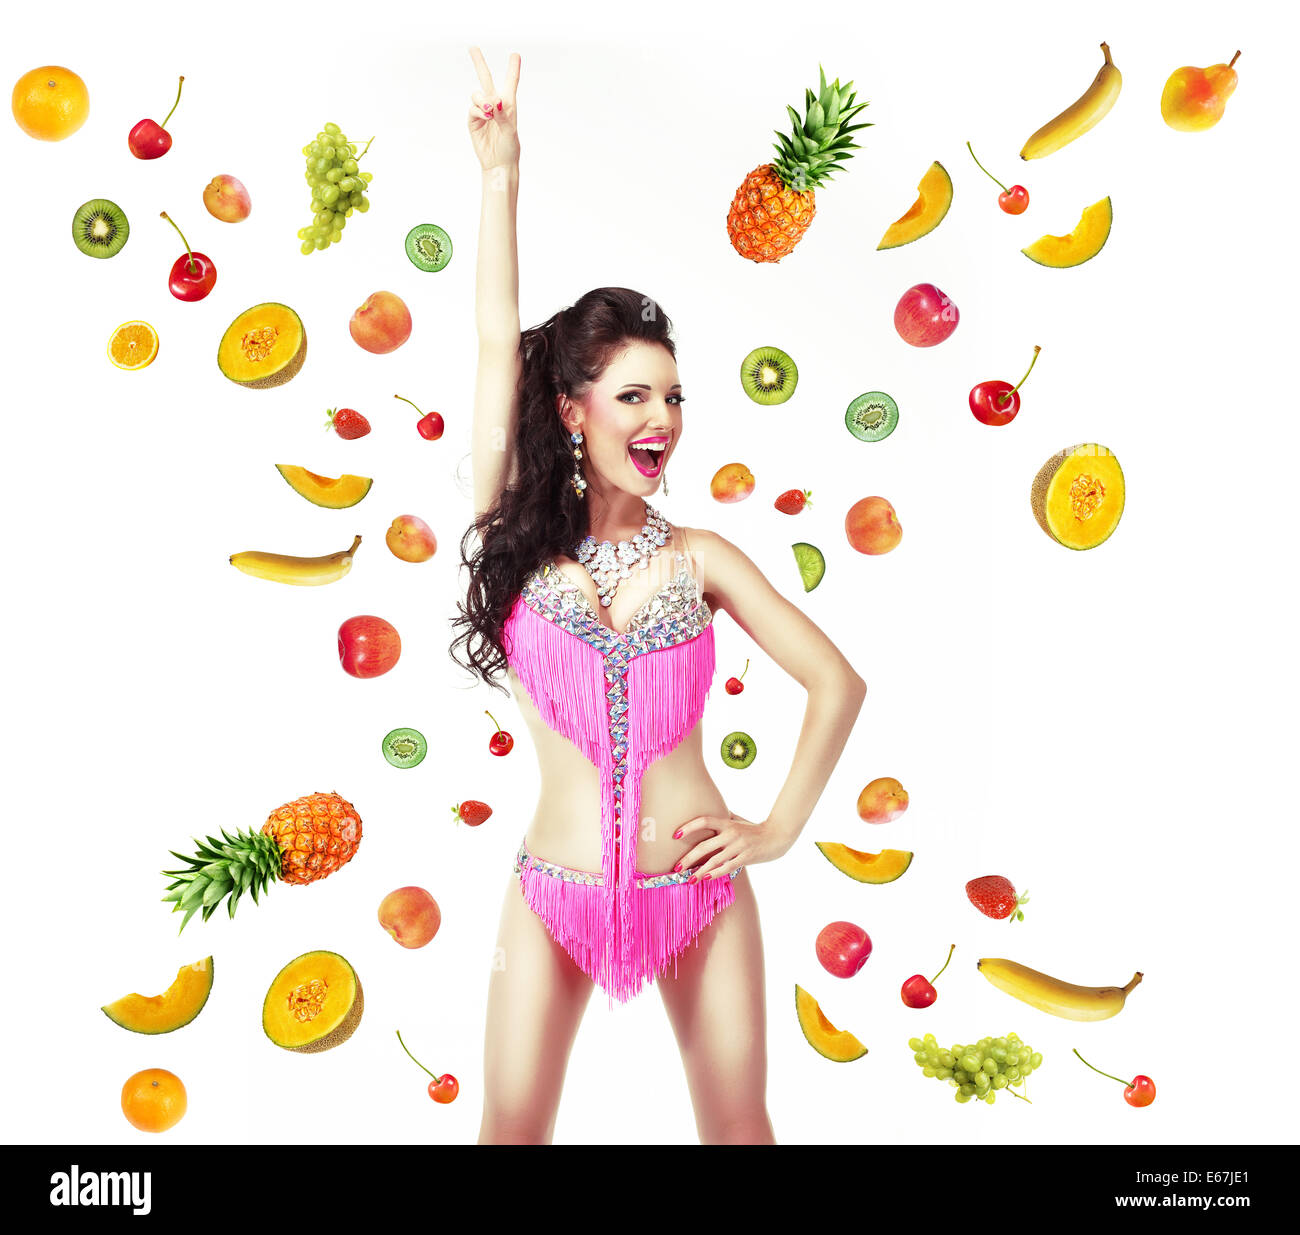 Healthy Lifestyle & Diet Concept. Woman with Mix of Juicy Fresh Fruit - Stock Image